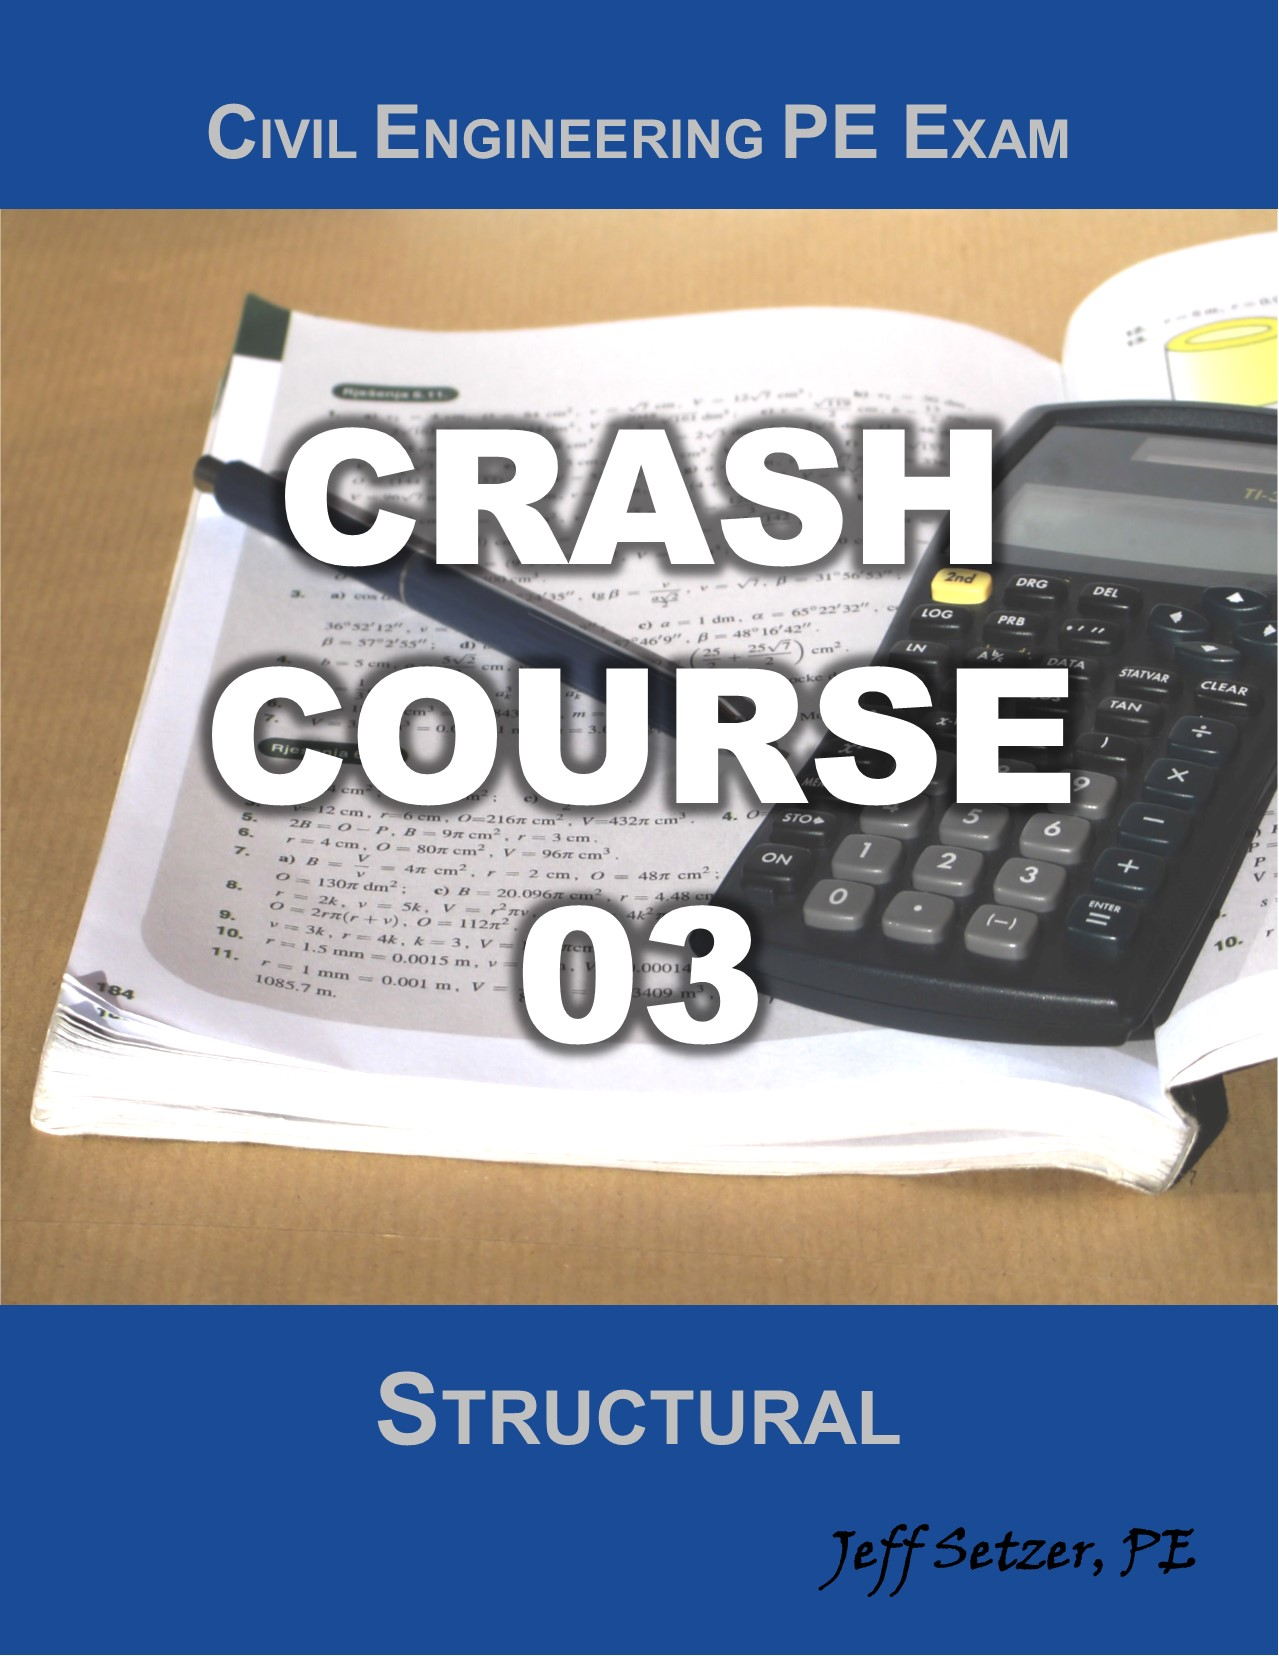 Civil Engineering Structural PE Exam Crash Course 03